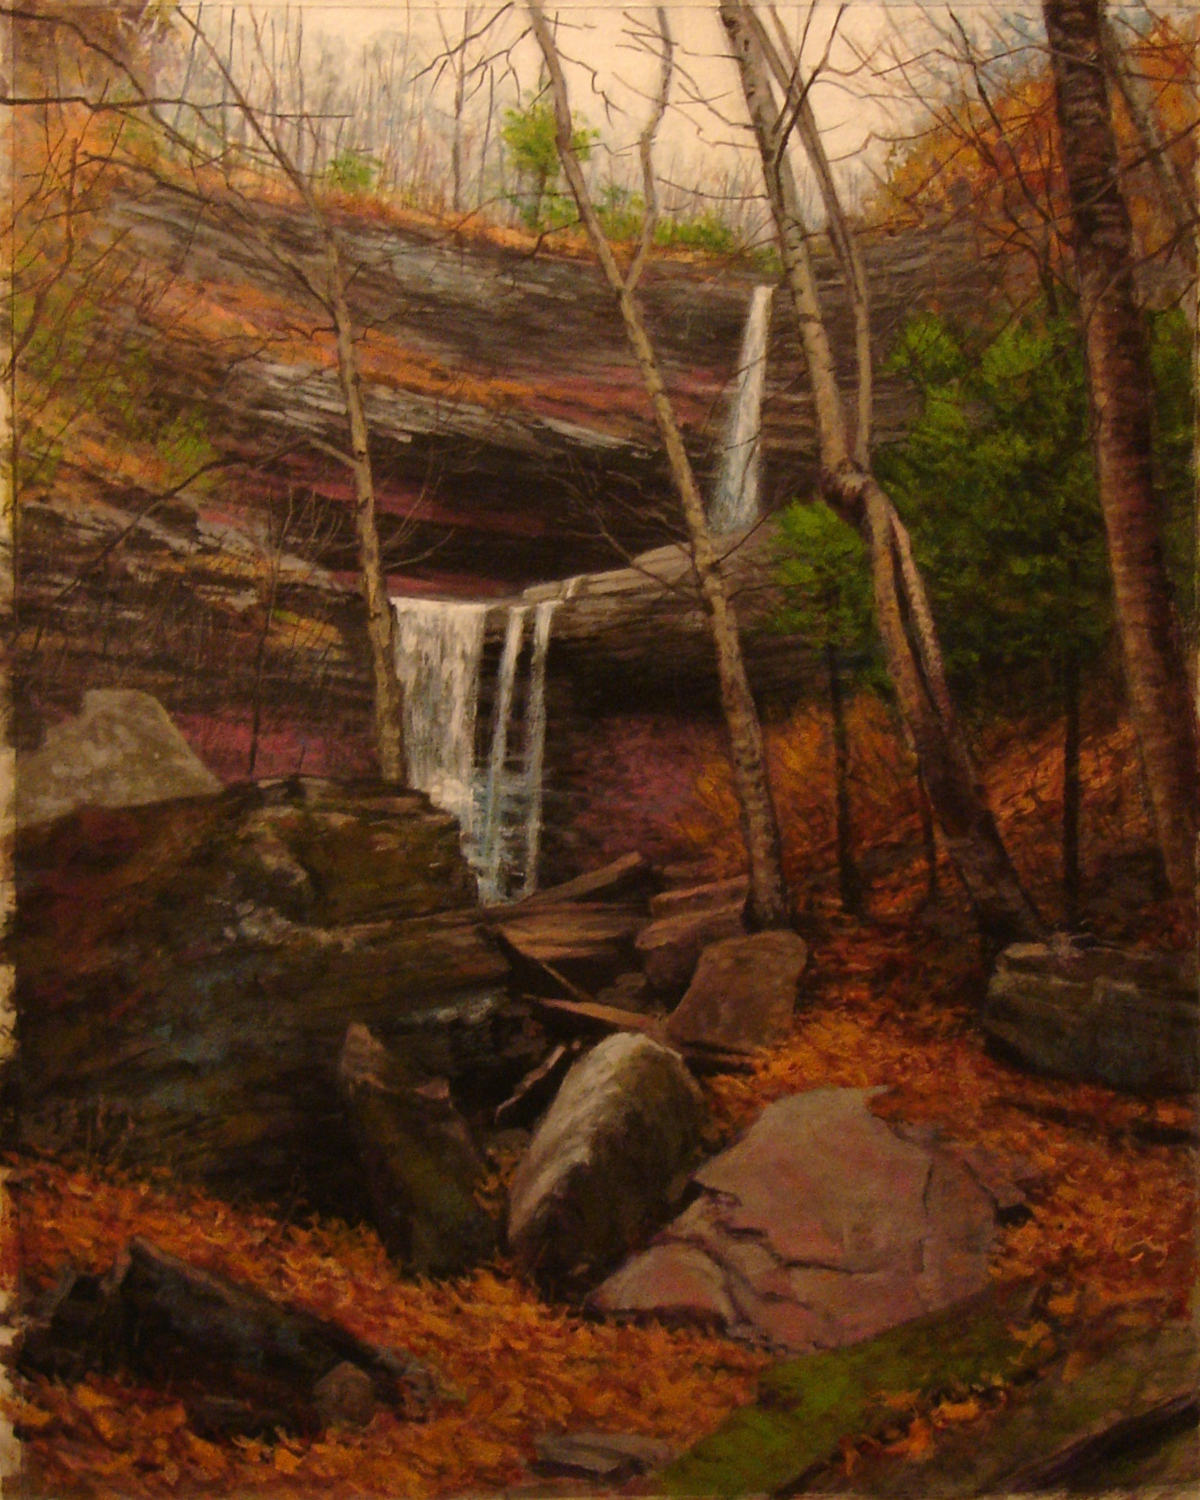 Kaaterskill Falls in Fall